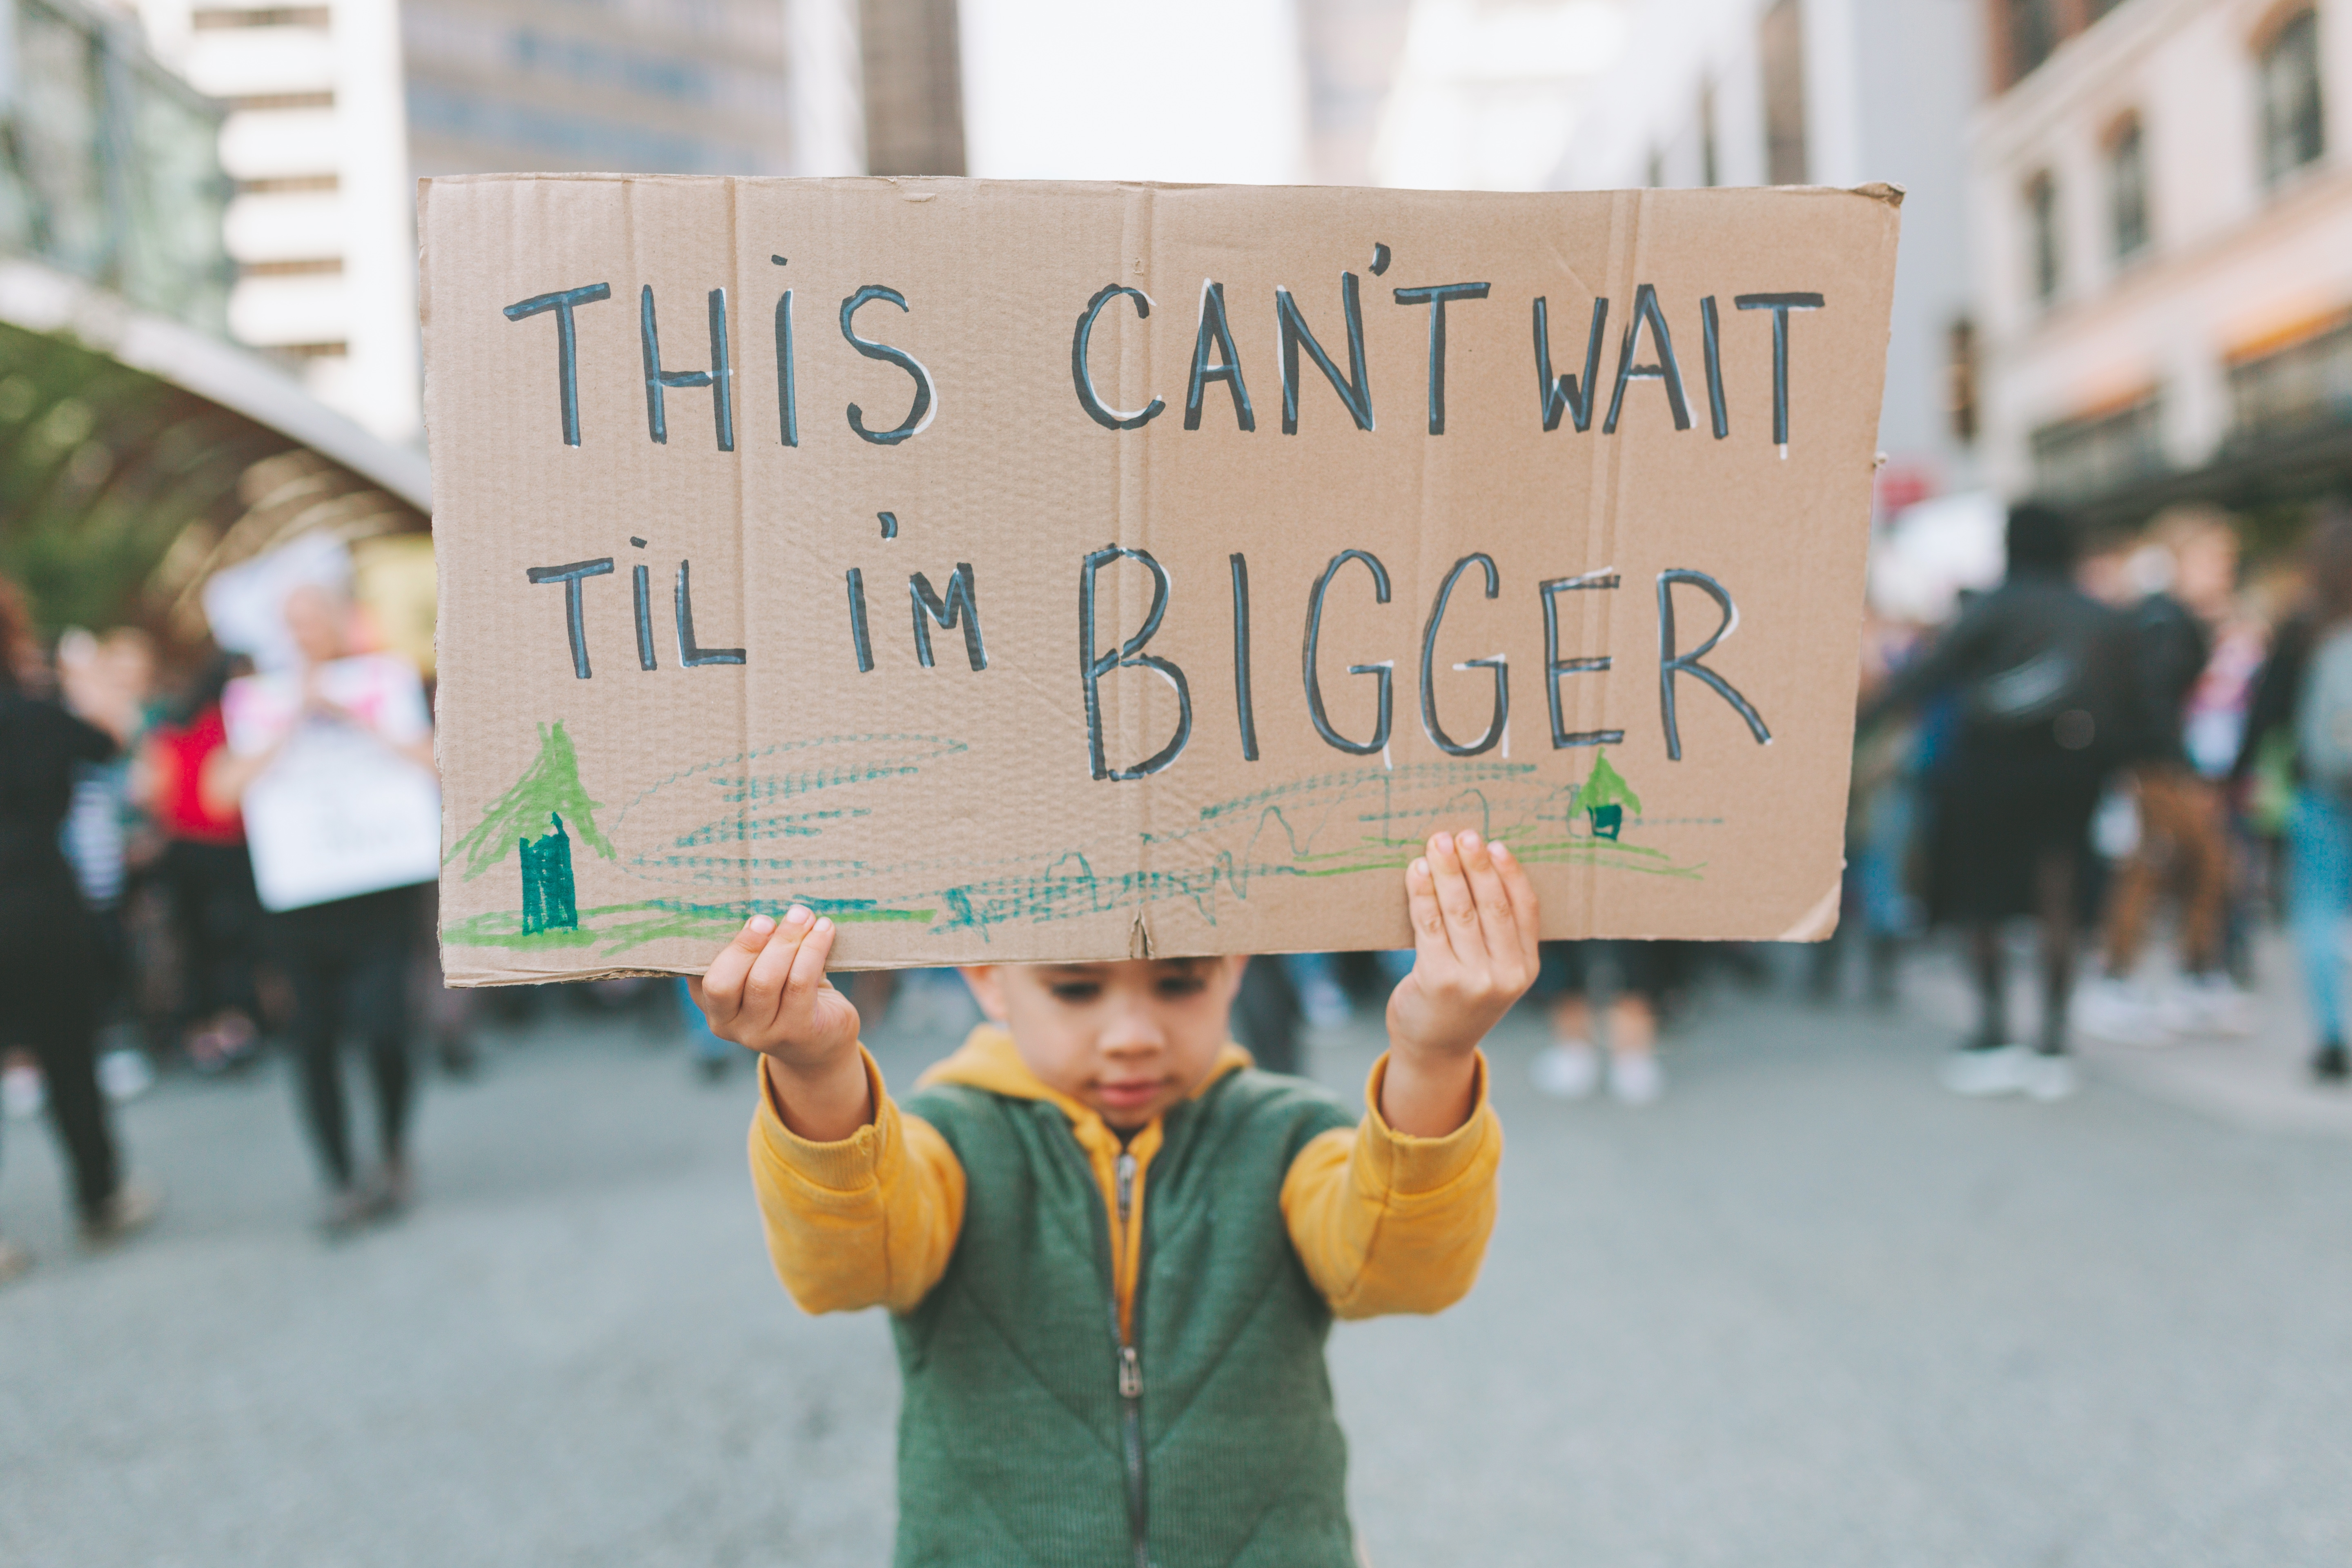 sign-child-boy-earth-climate-climate-change-rally-protest-march-activism-2019_t20_kRQ72X